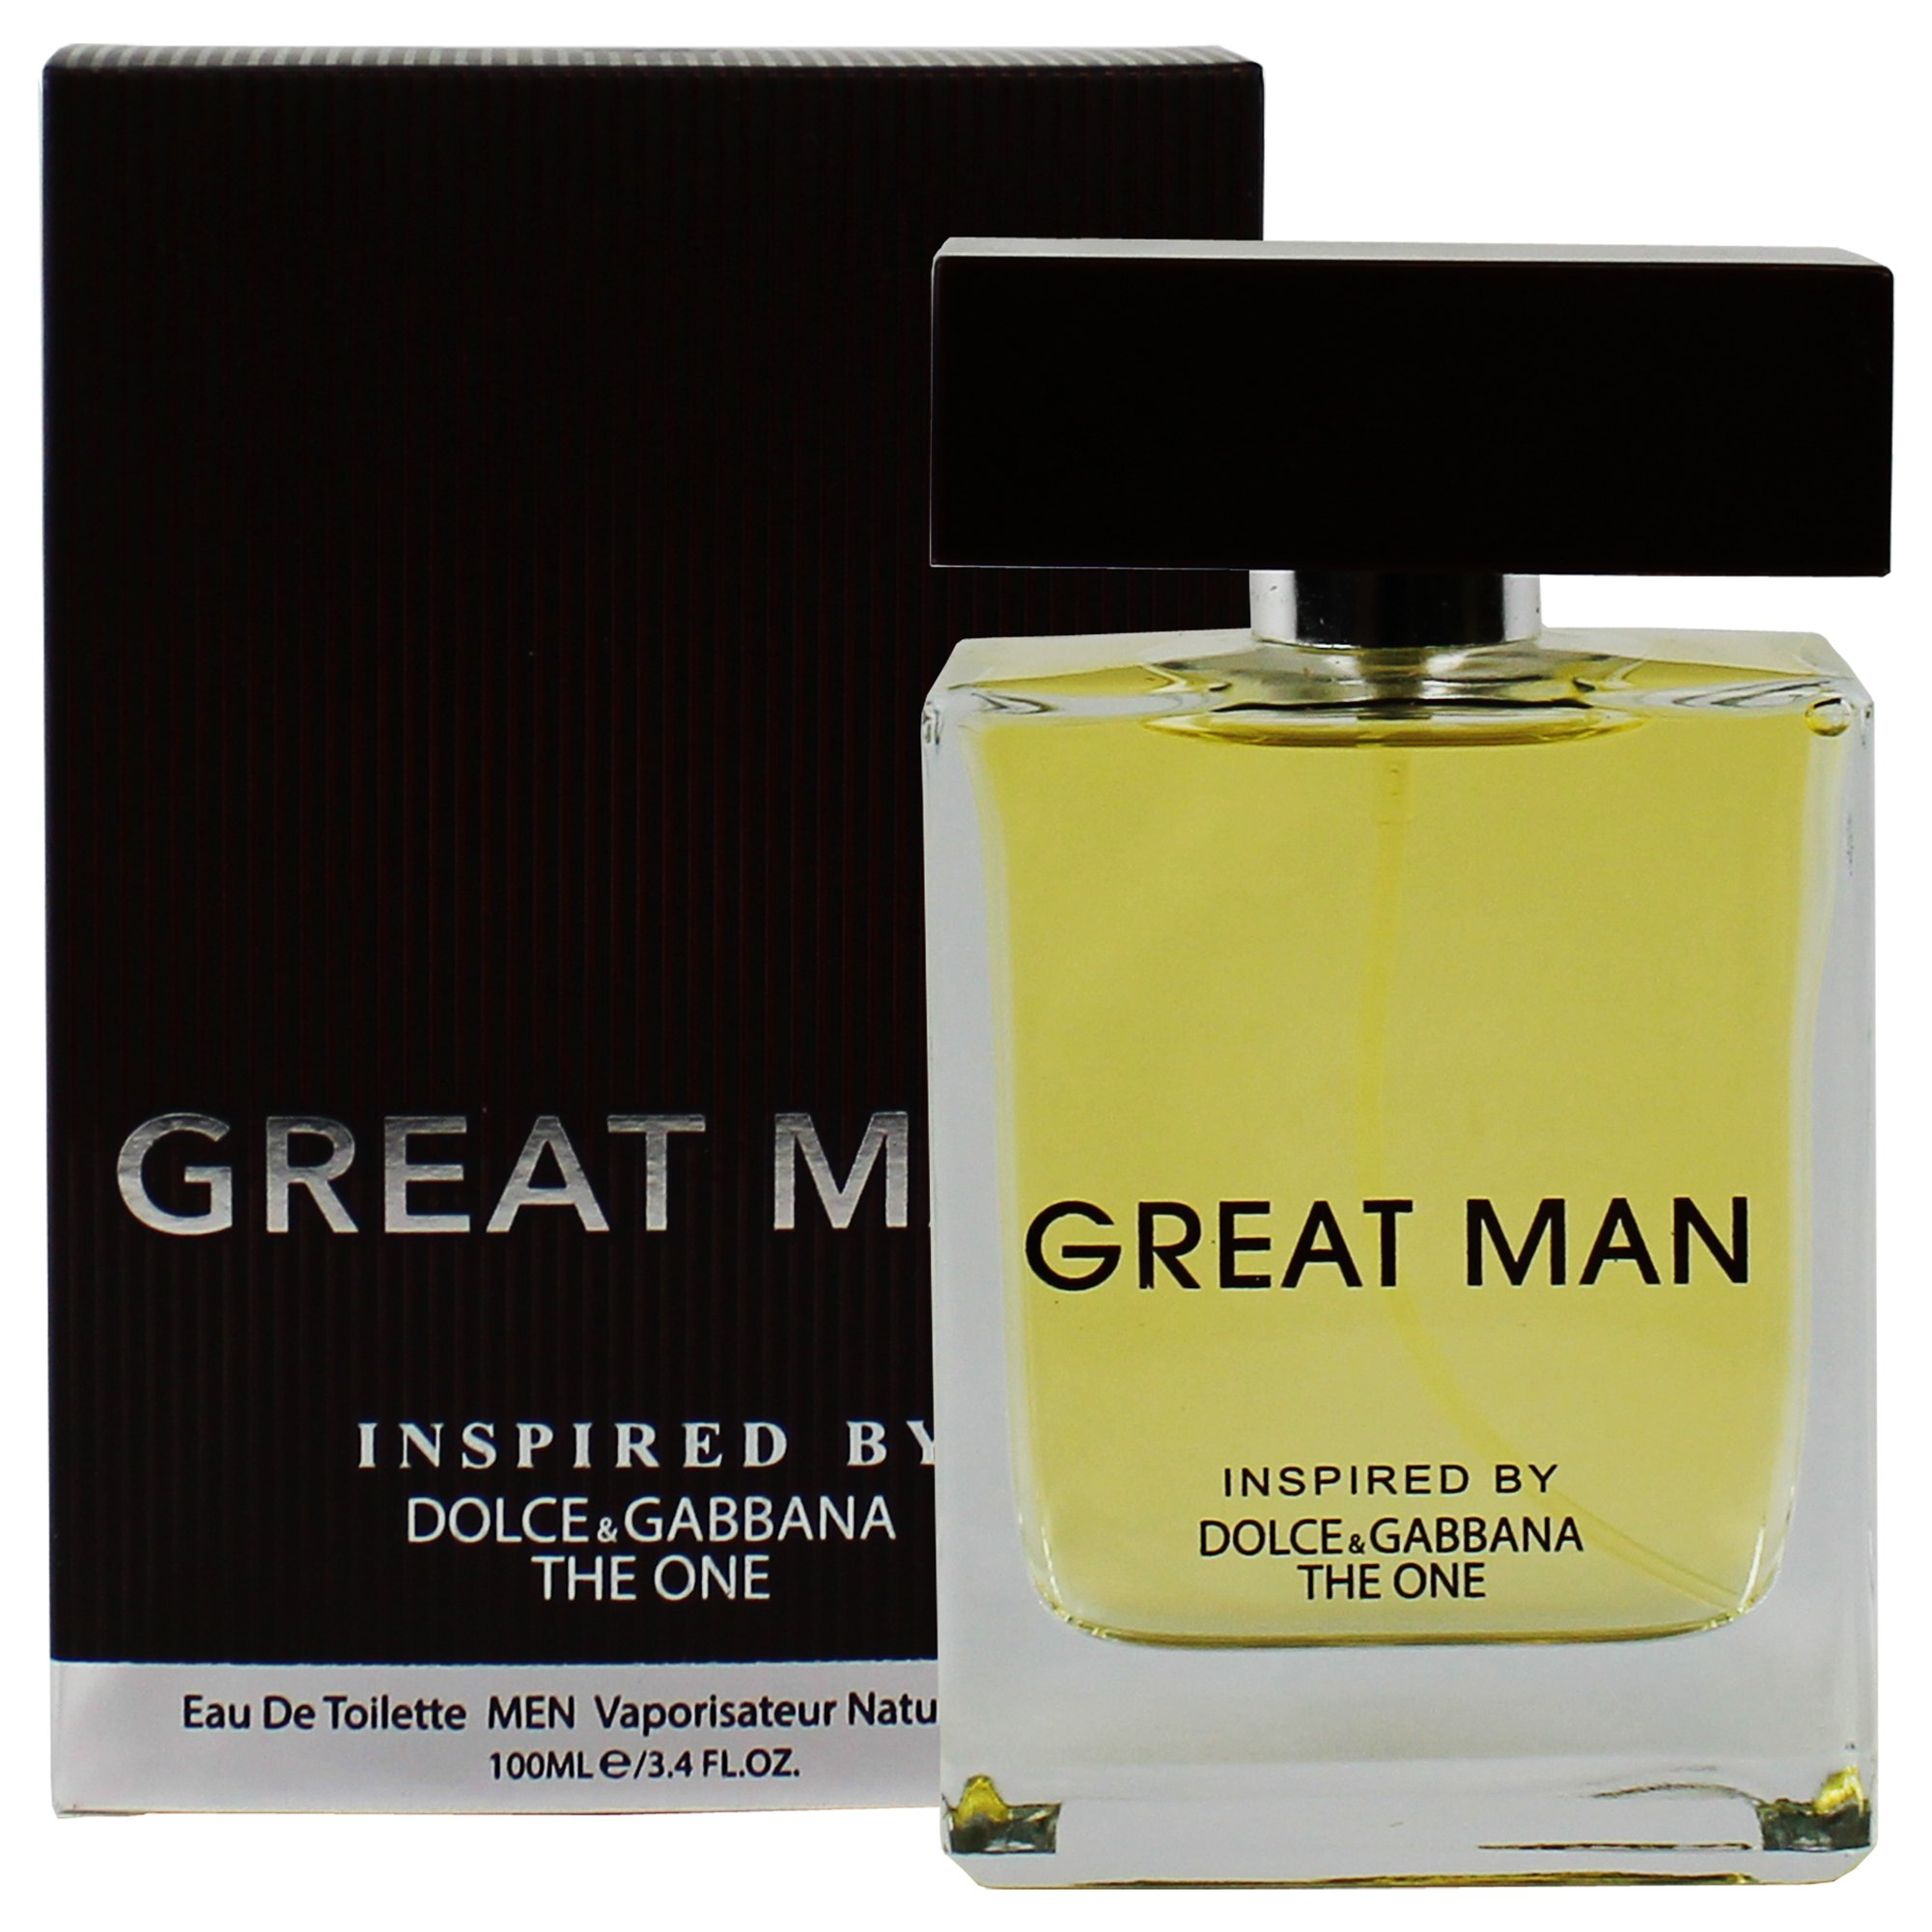 16d5dafd4b8f64 Amazon.com   Great Man For Men, Eau De Toilette 3.3 Fl. Oz.  100 ml -  Inspired By The One Cologne   Beauty